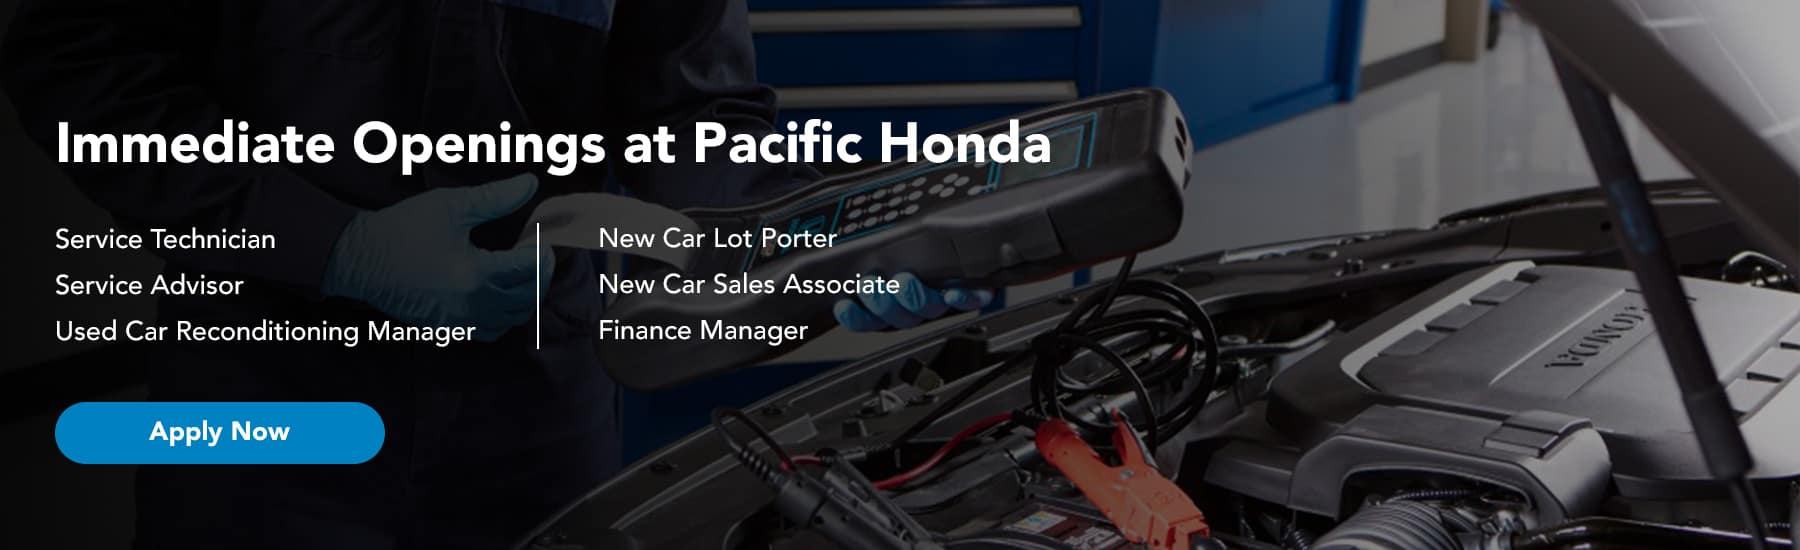 Immediate Openings at Pacific Honda List the open positions which are Service Technician Service Advisor Used Car Reconditioning Manager New Car Lot Porter New Car Sales Associate Finance Manager